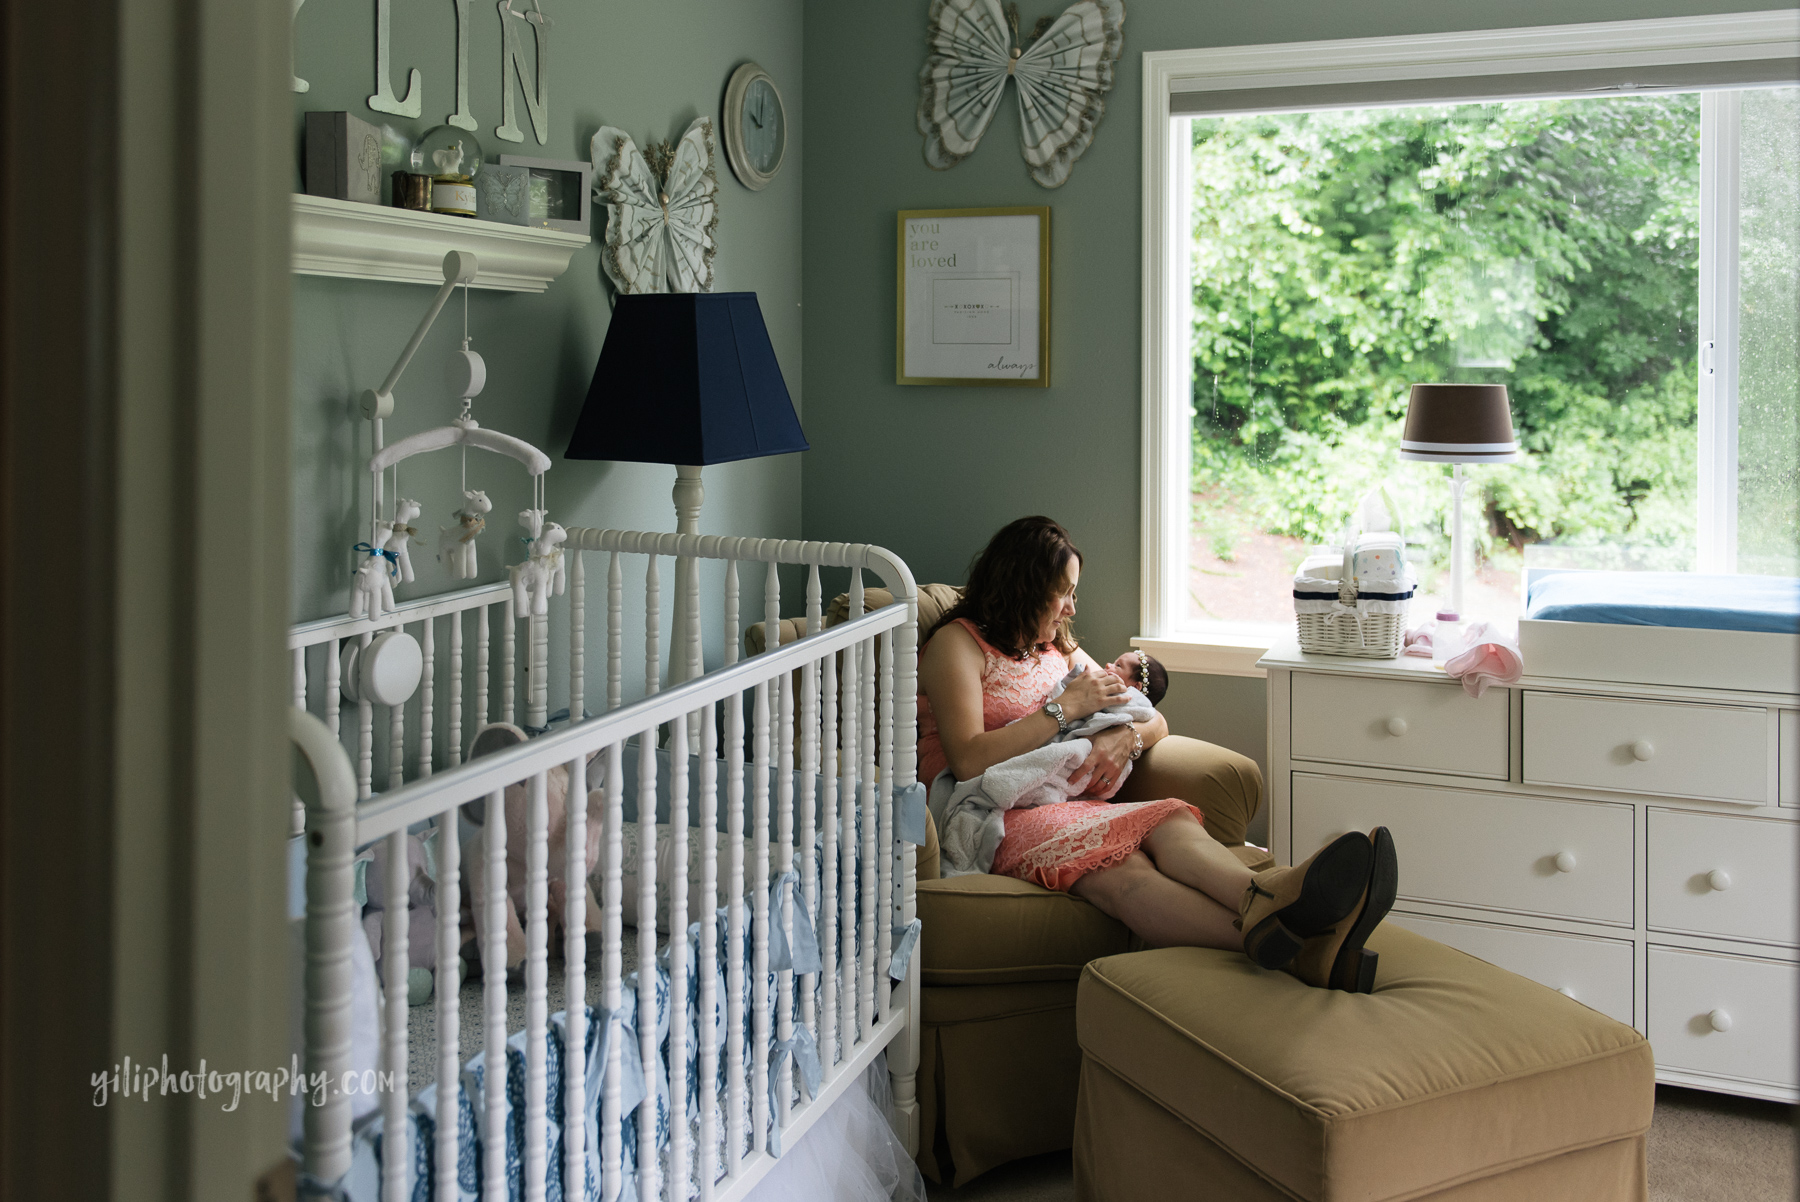 wide angle photo of mom sitting in rocker in nursery holding newborn